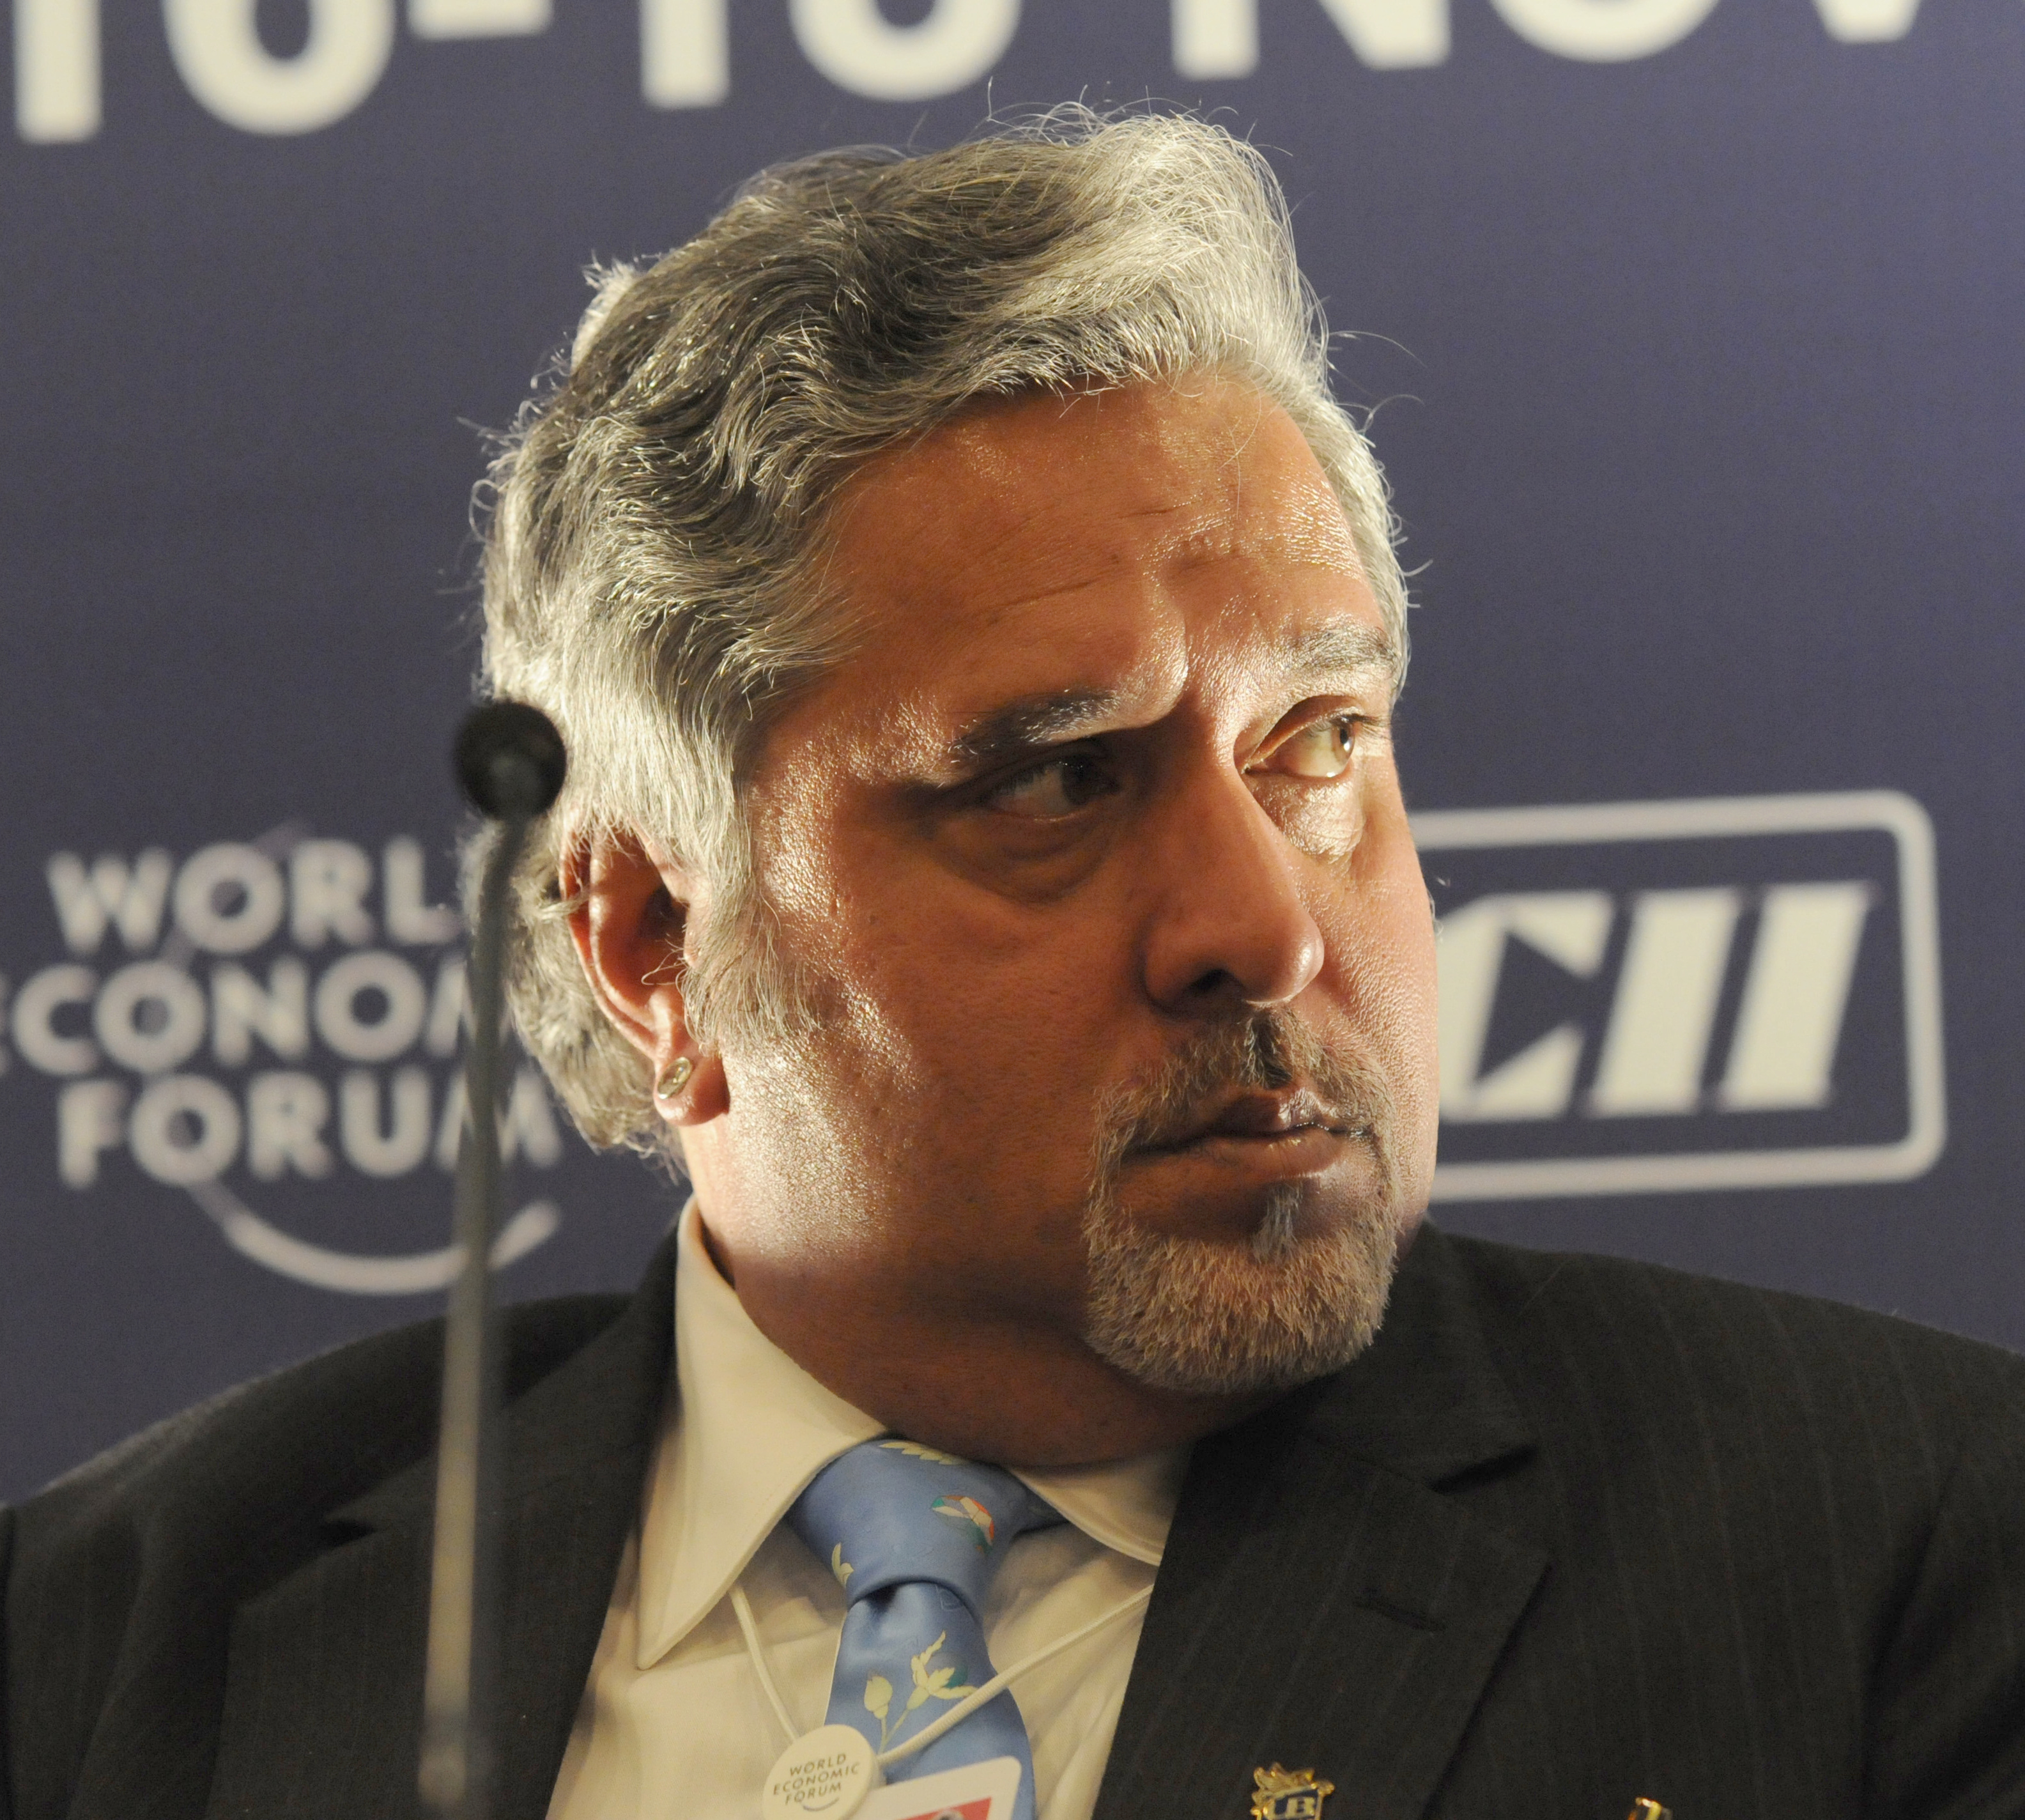 The 62-year old son of father (?) and mother(?) Vijay Mallya in 2018 photo. Vijay Mallya earned a  million dollar salary - leaving the net worth at 120 million in 2018